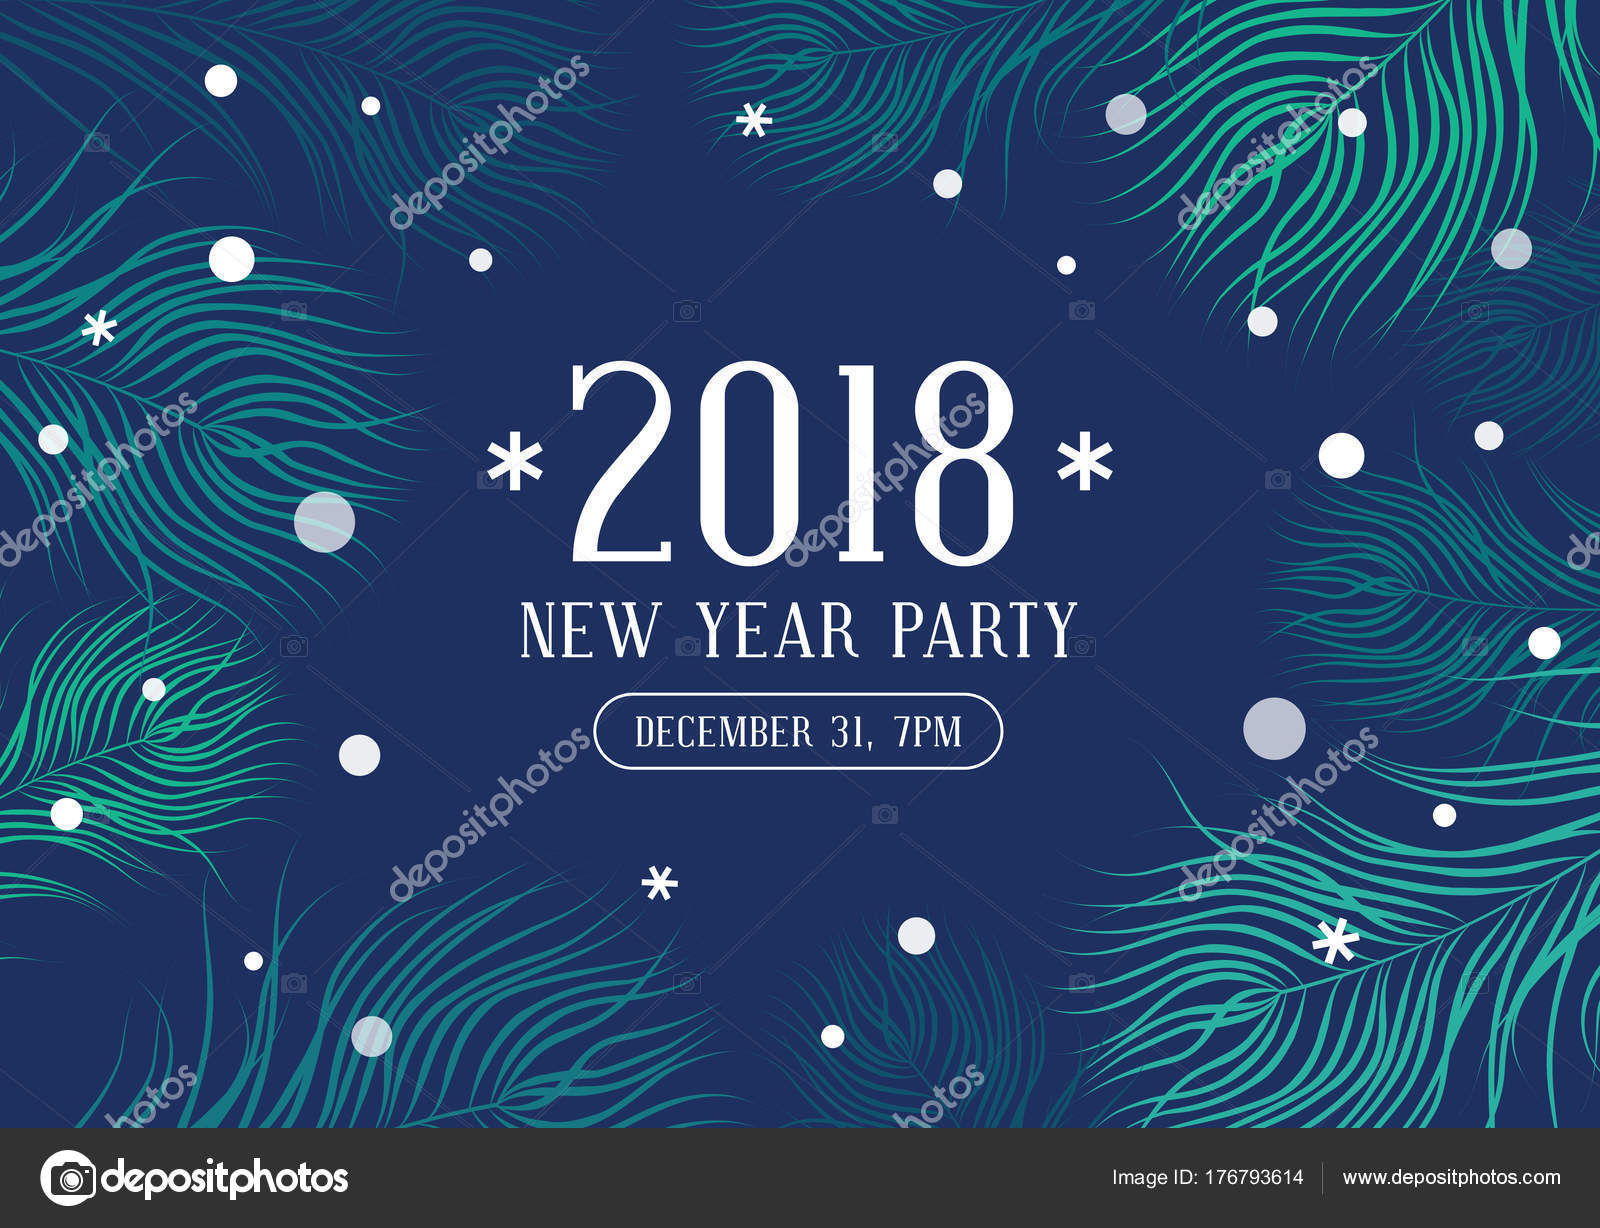 happy new year 2018 party invitation stock vector